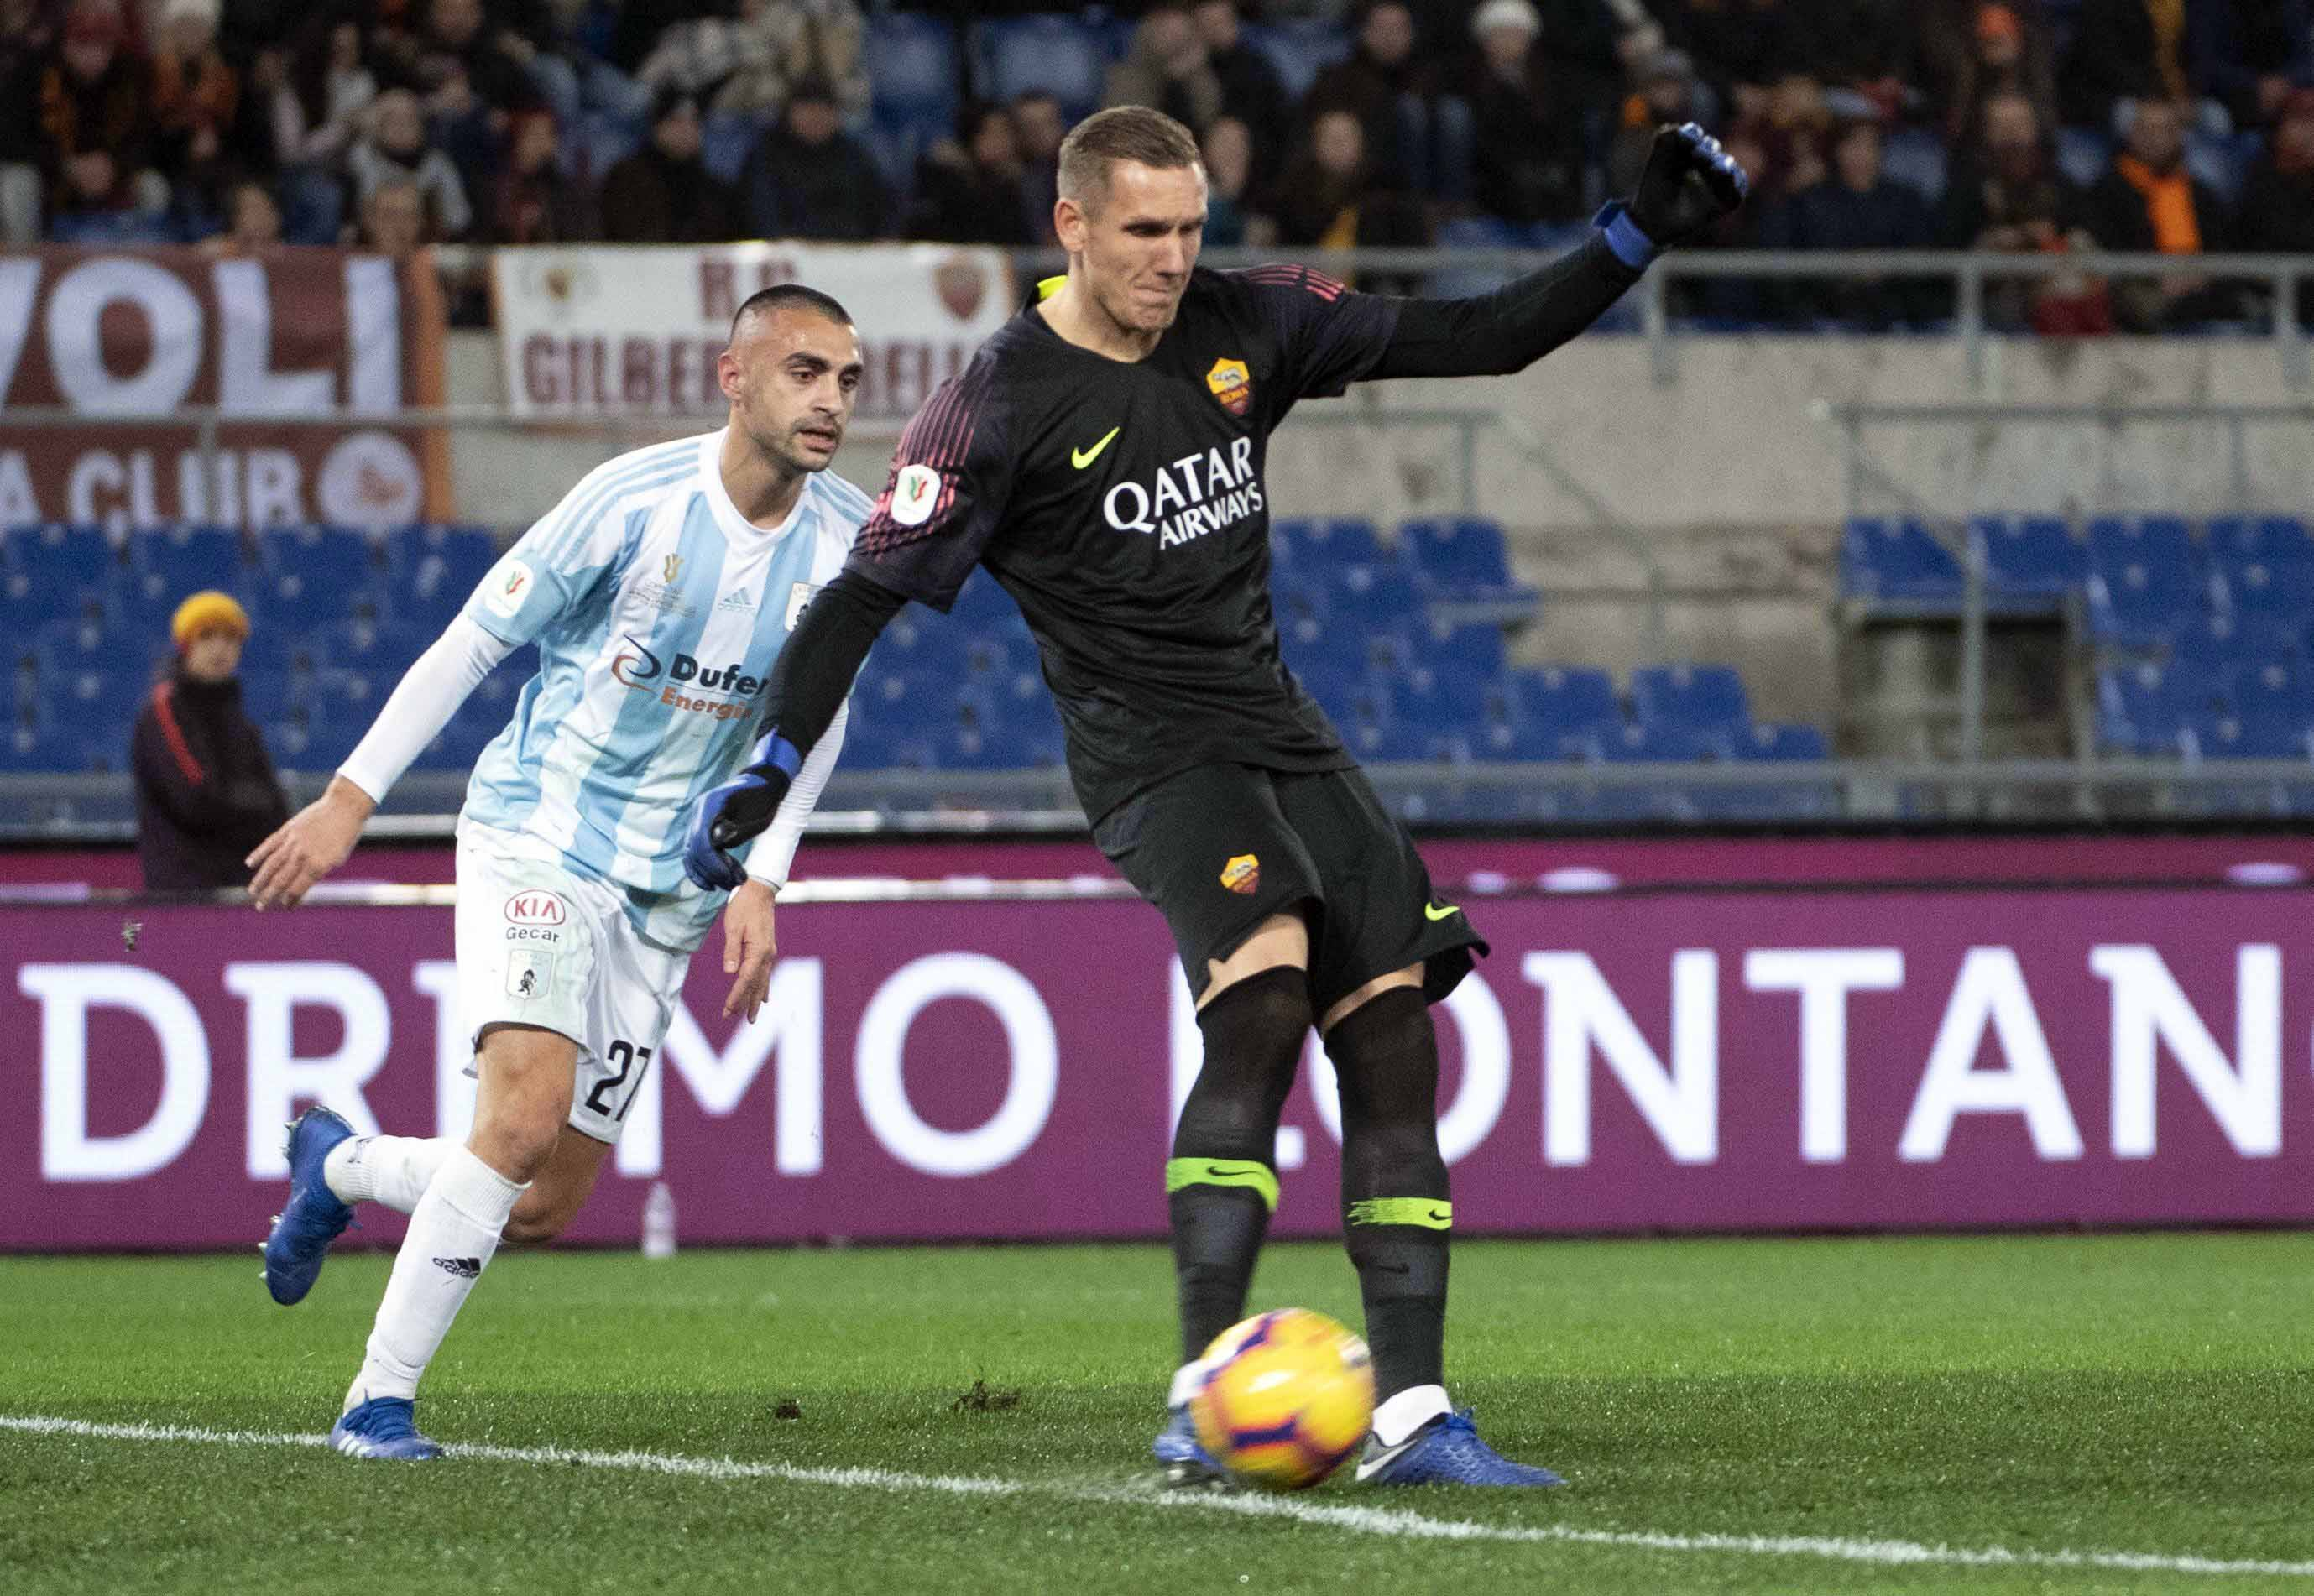 Roma's goalkeeper Robin Olsen in action during the Italian Cup soccer match between AS     Roma and Virtus Entella at the Olimpico stadium in Rome, Italy on Monday.